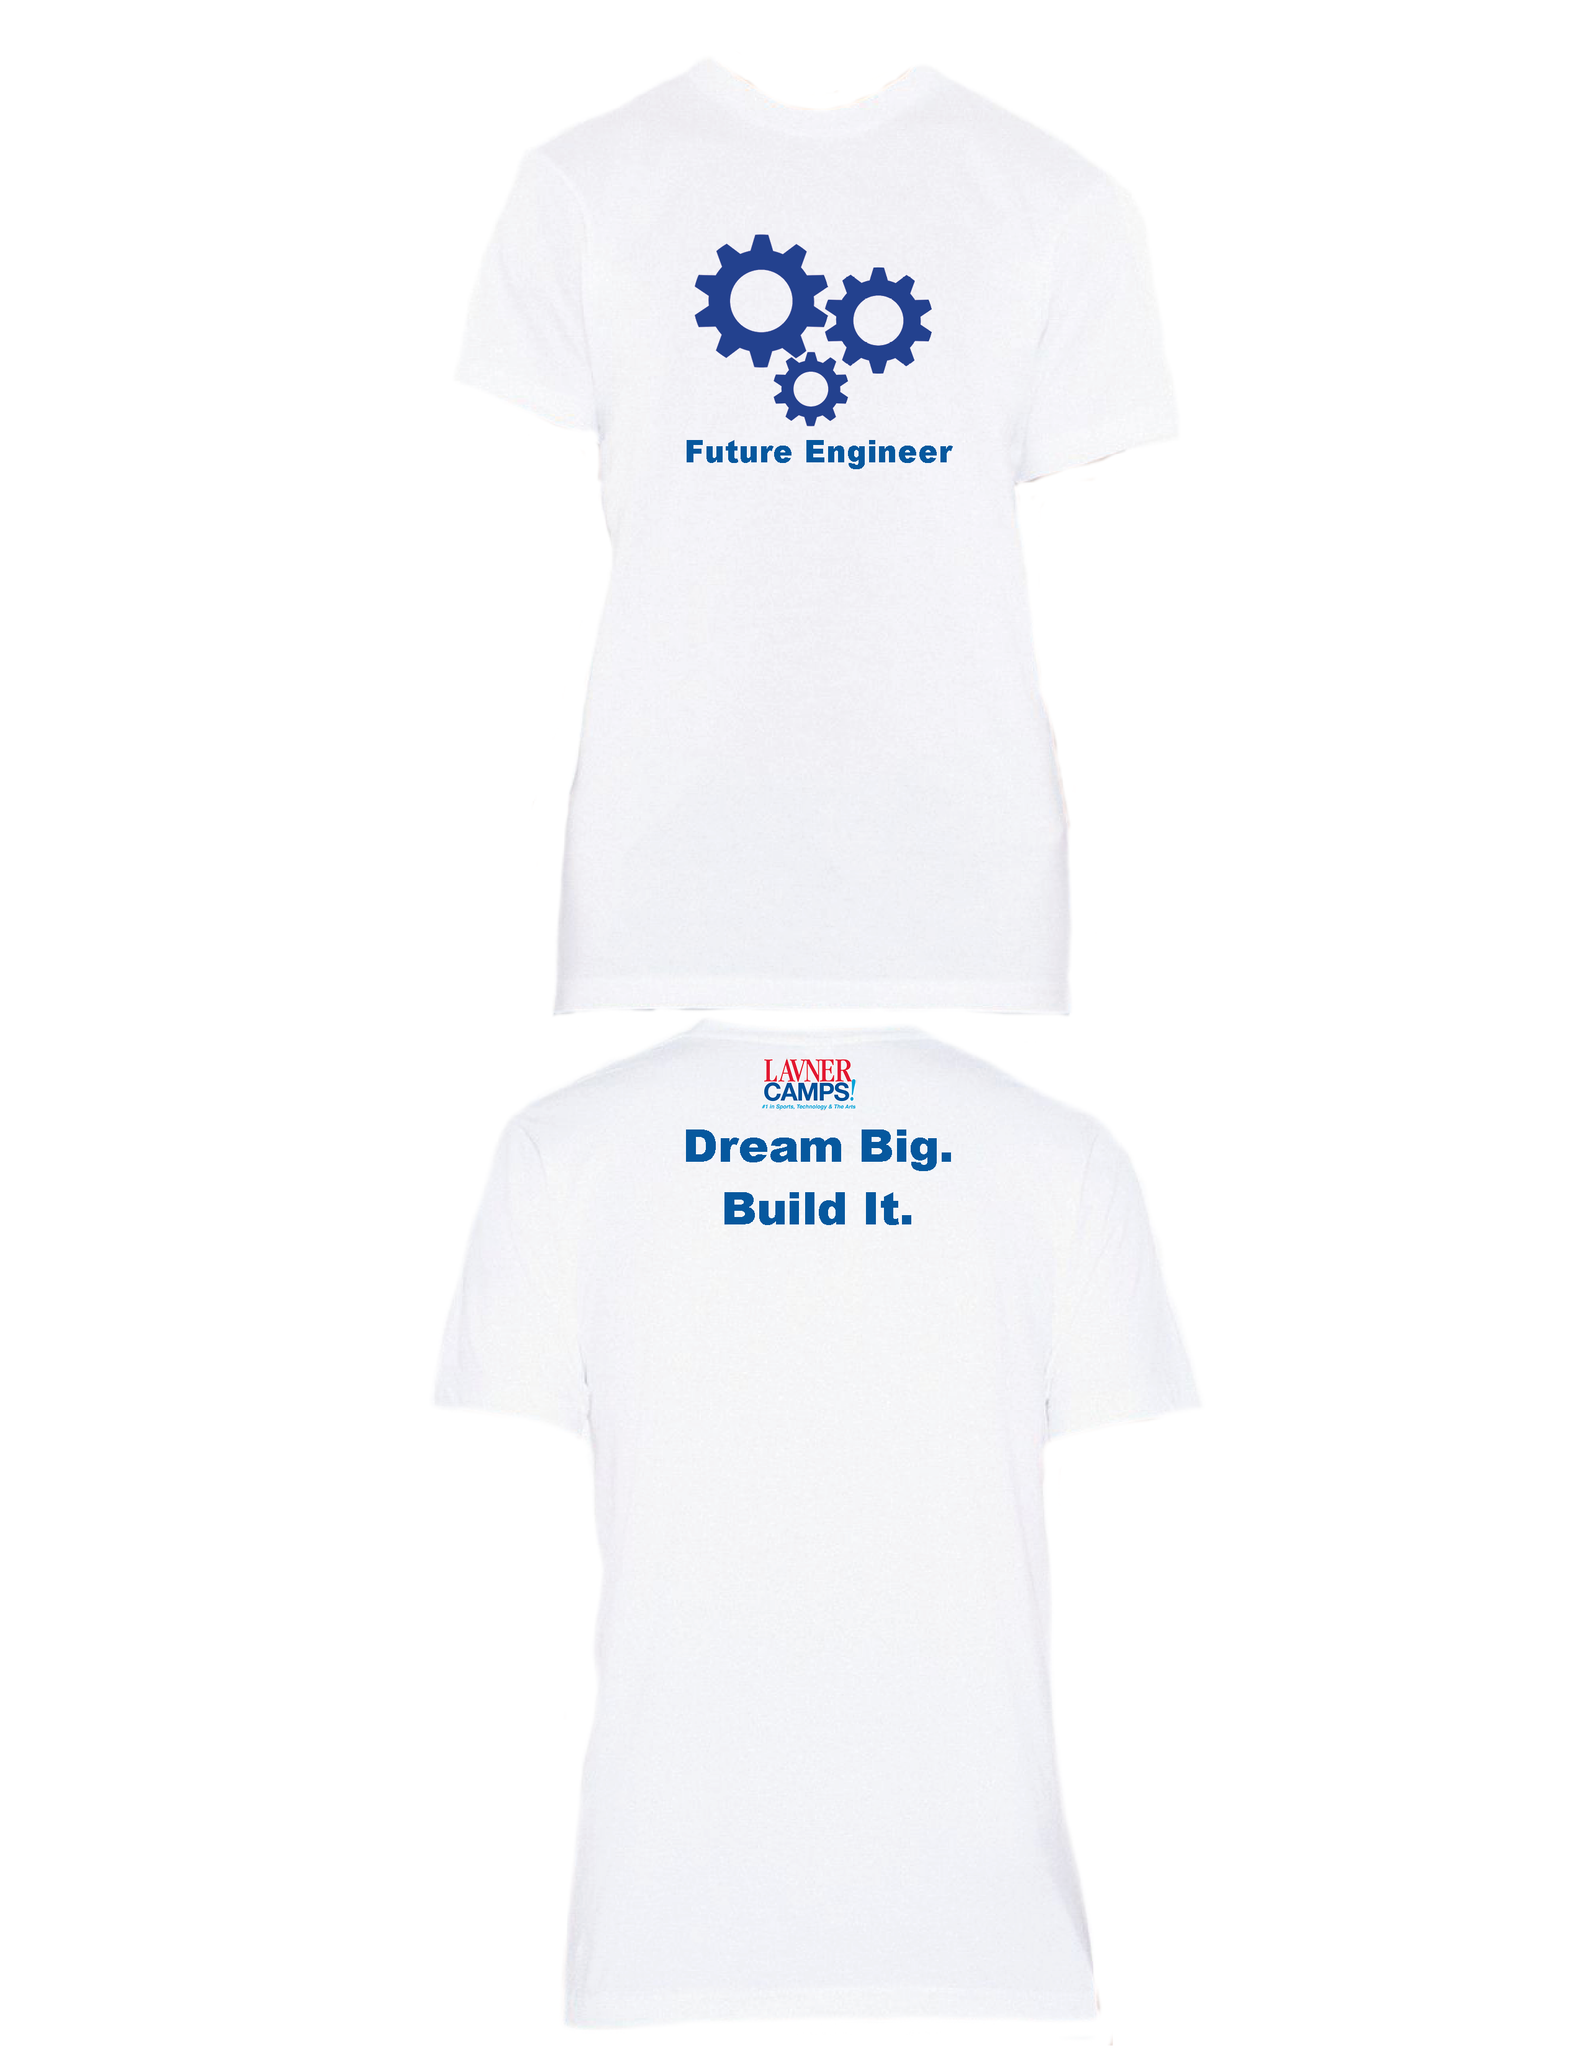 Future Engineer T-Shirt (Adult)